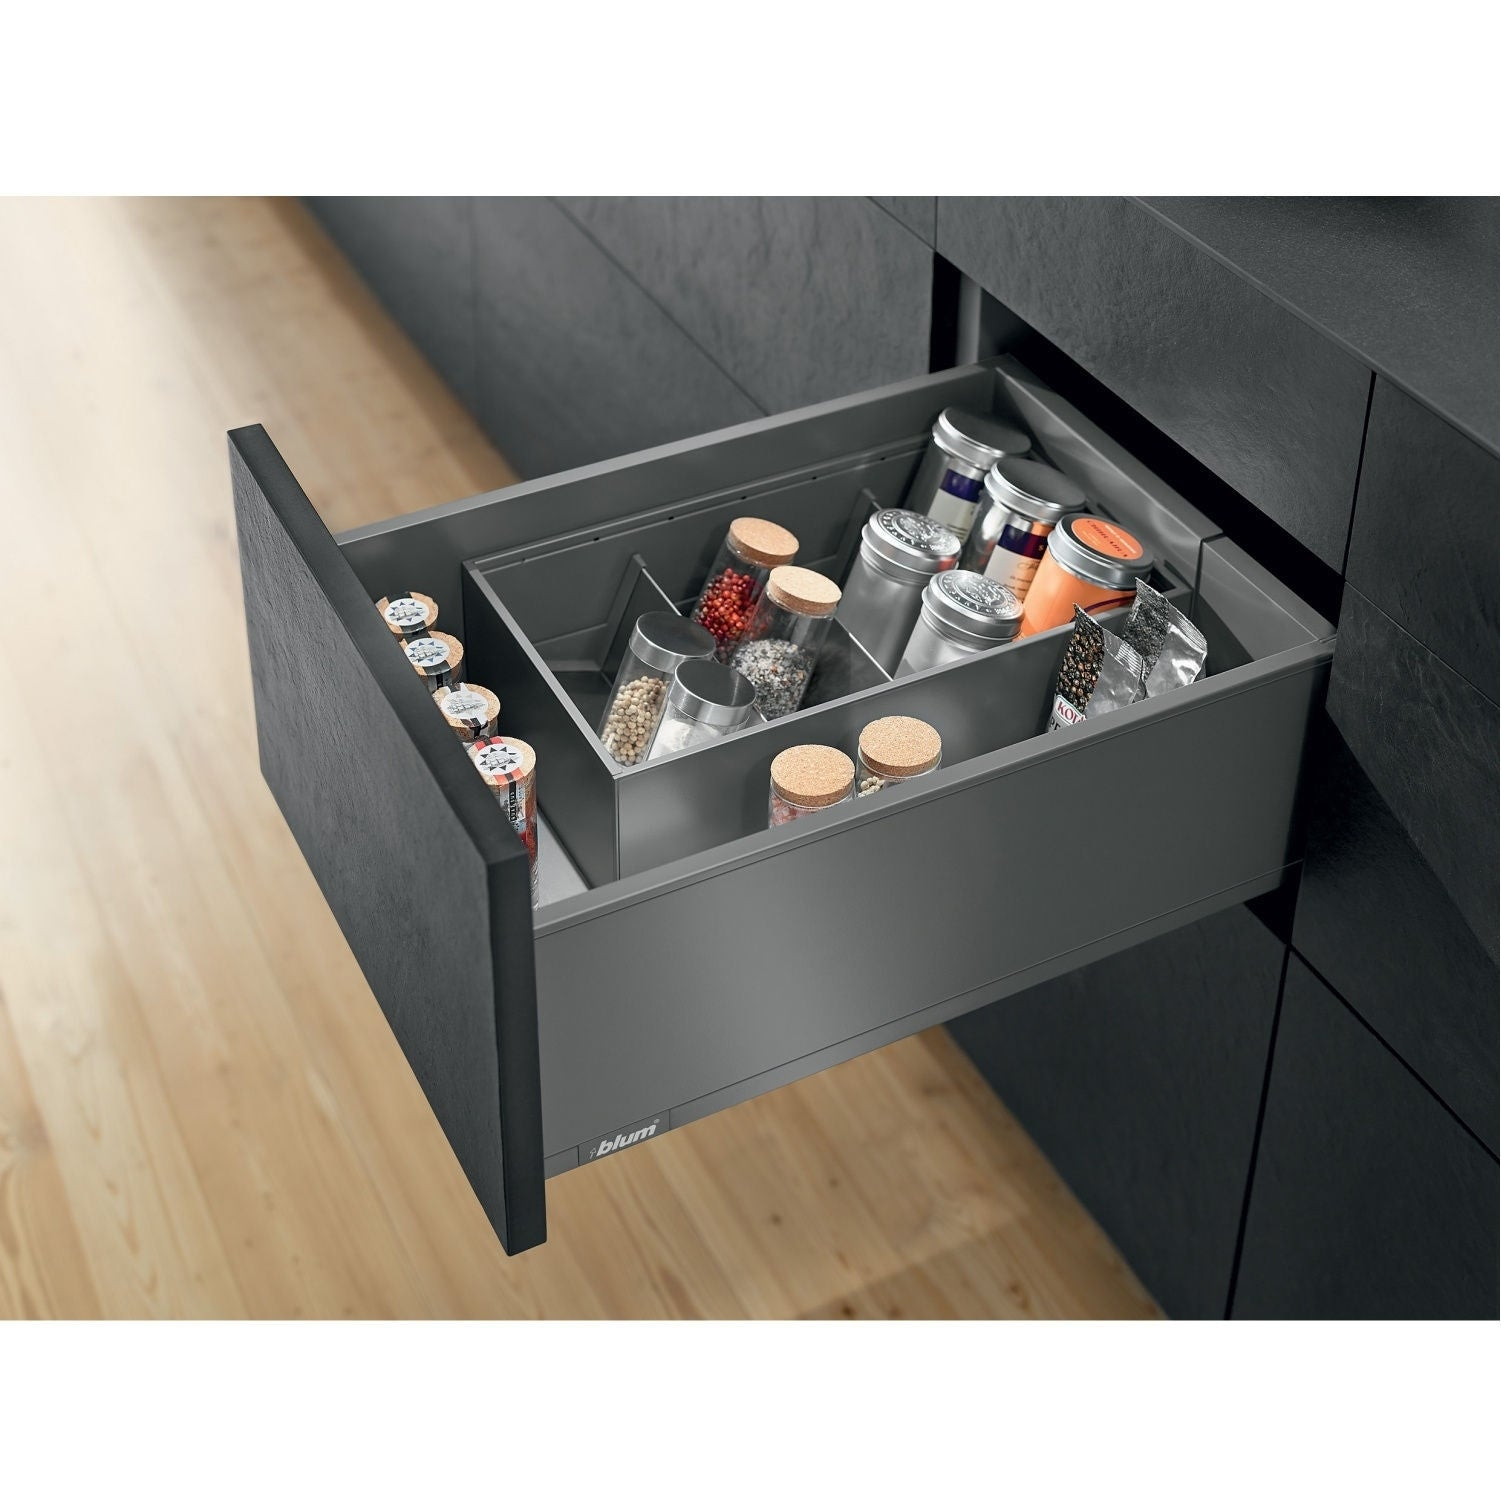 ideas and picture size out full design concept base kitchen of organizers kit cabinet impressive kits kitchennet pull drawer home baskets drawers